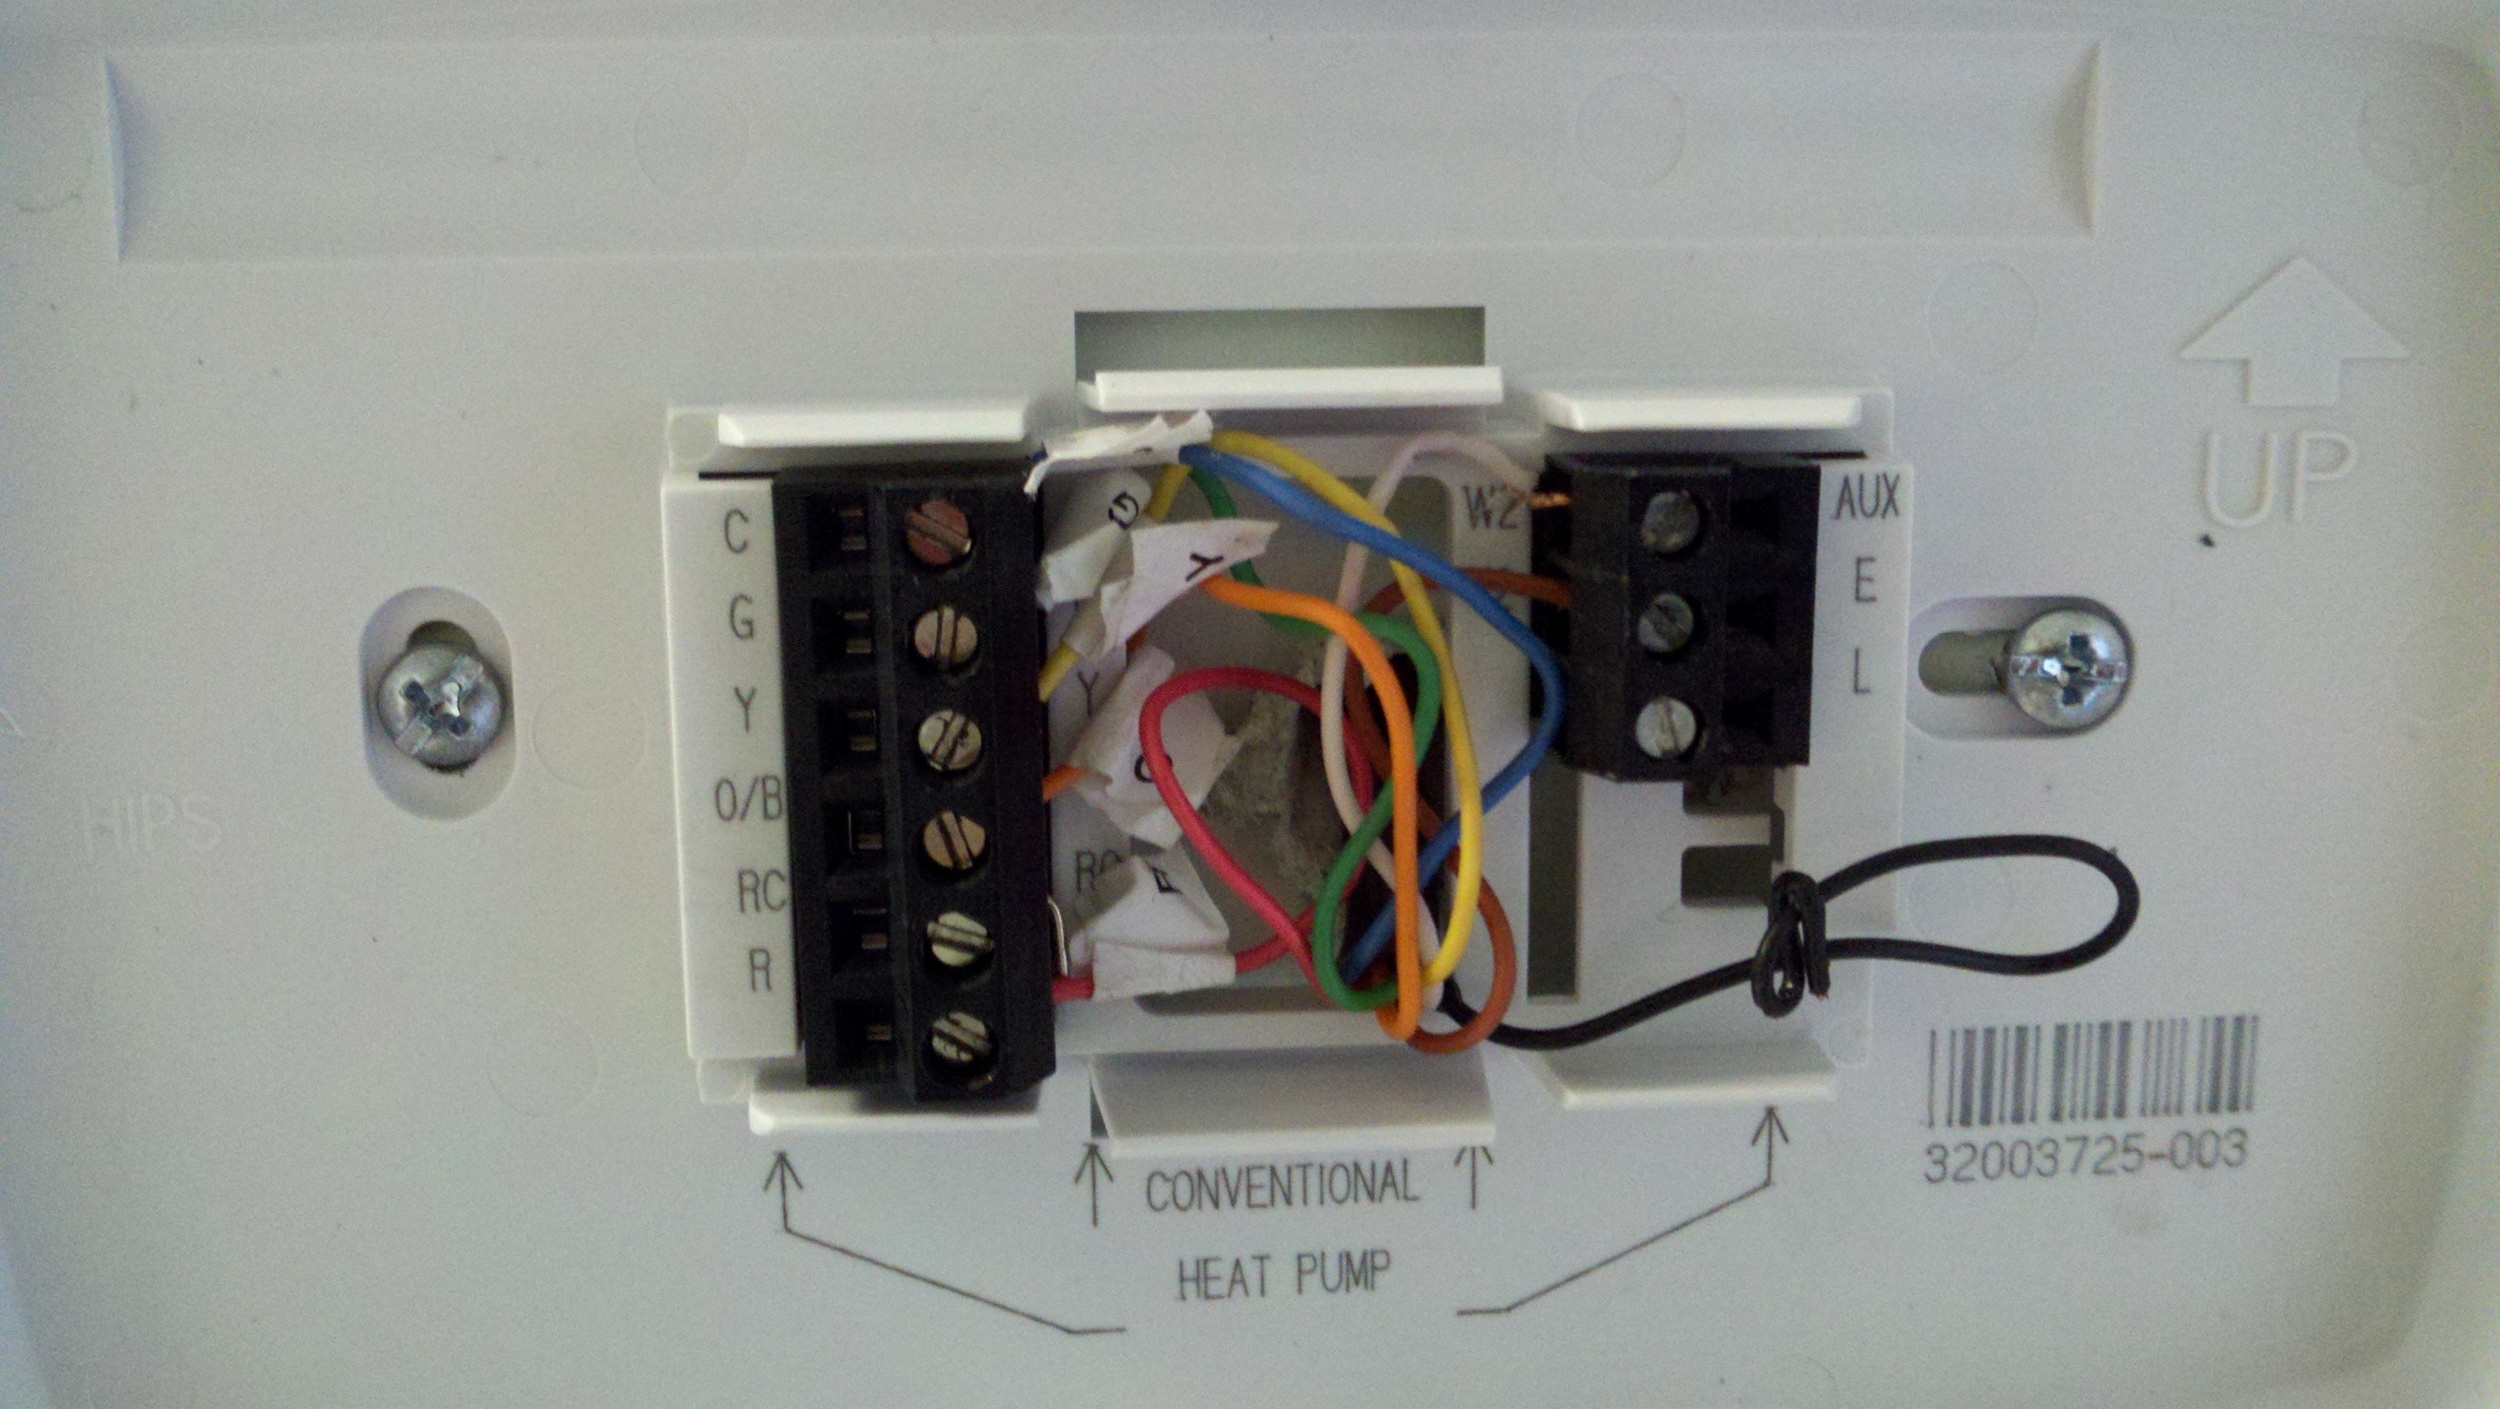 taco relay wiring thermostat wi fi best secret wiring diagram • wi fi thermostat control taco wiring wi engine taco thermostat wiring 2 zones 1 thermostat taco pump wiring diagram